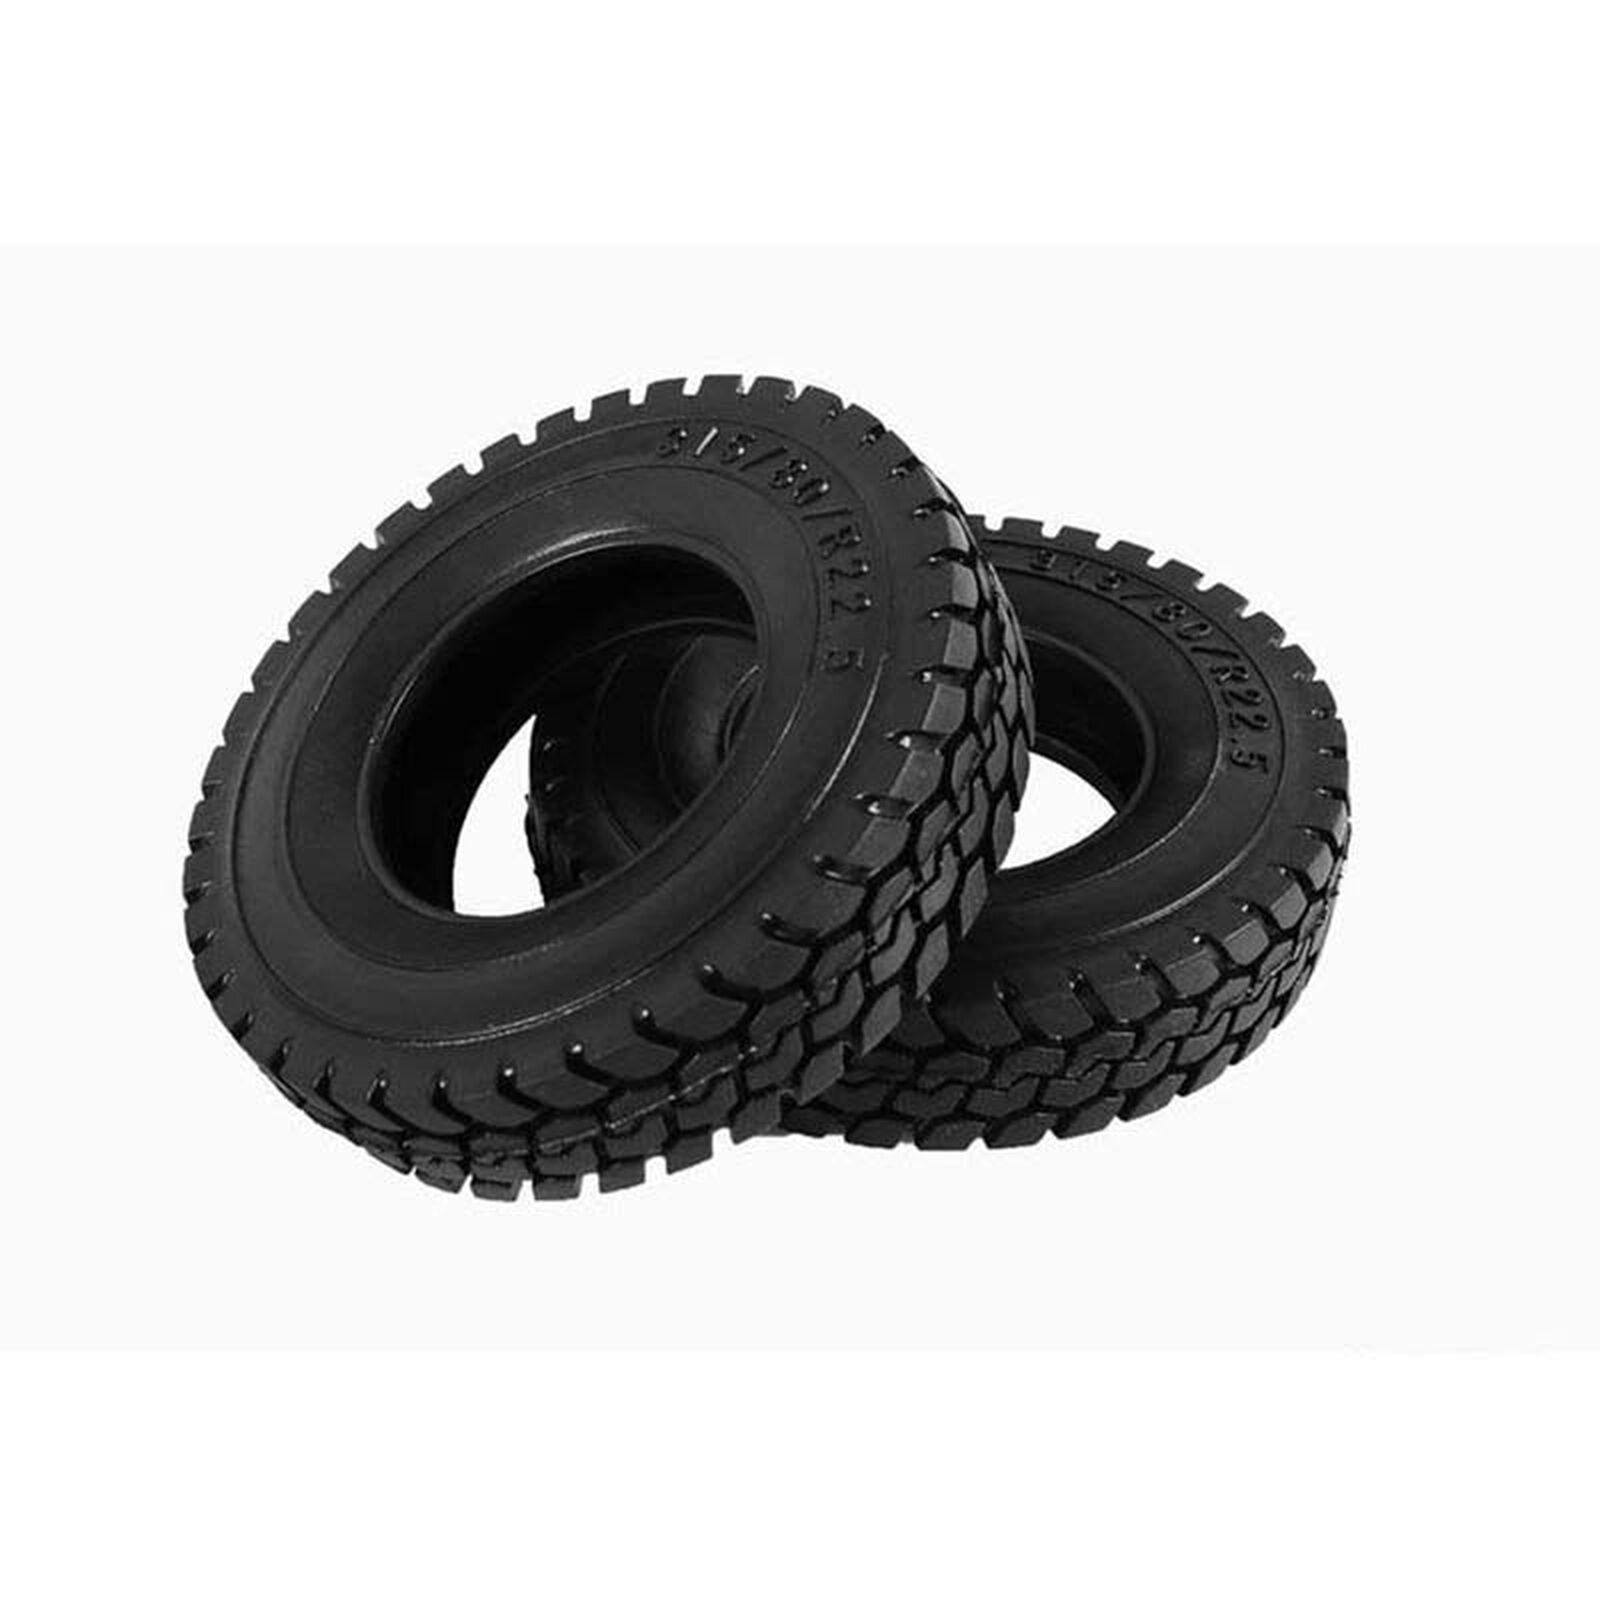 1/14 King of the Road 1.7 Semi Truck Tires (2)